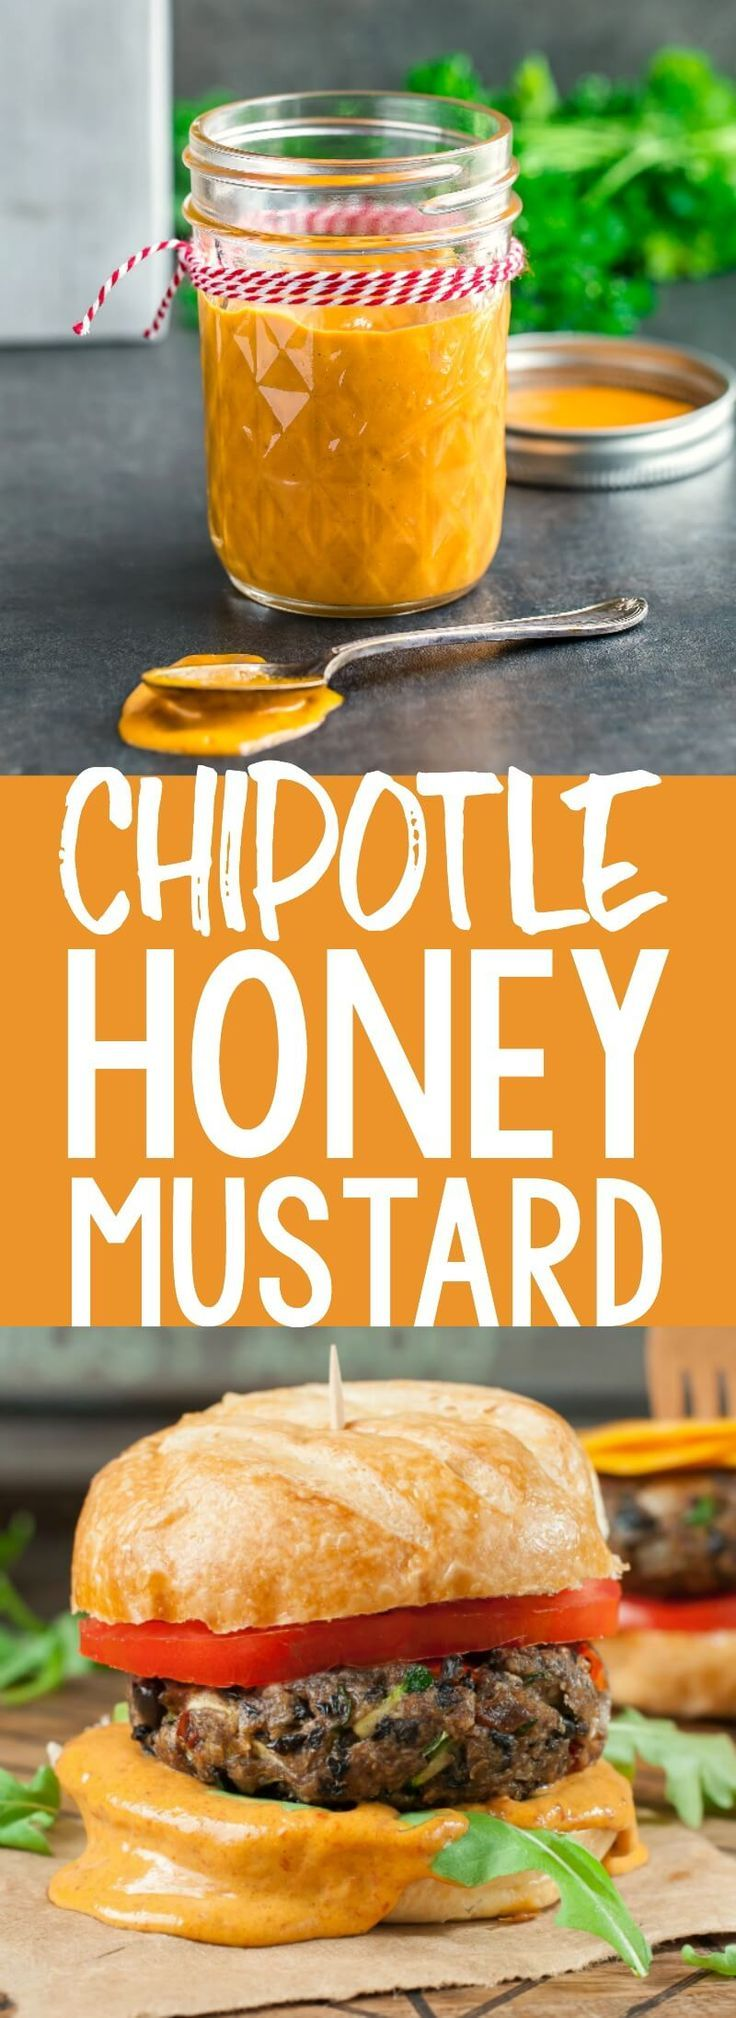 Chipotle Honey Mustard is here and ready for spreading, dunking, and a whole lot of face planting! We love it on veggie burgers, sandwiches, nuggets, french fries and so. much. more.